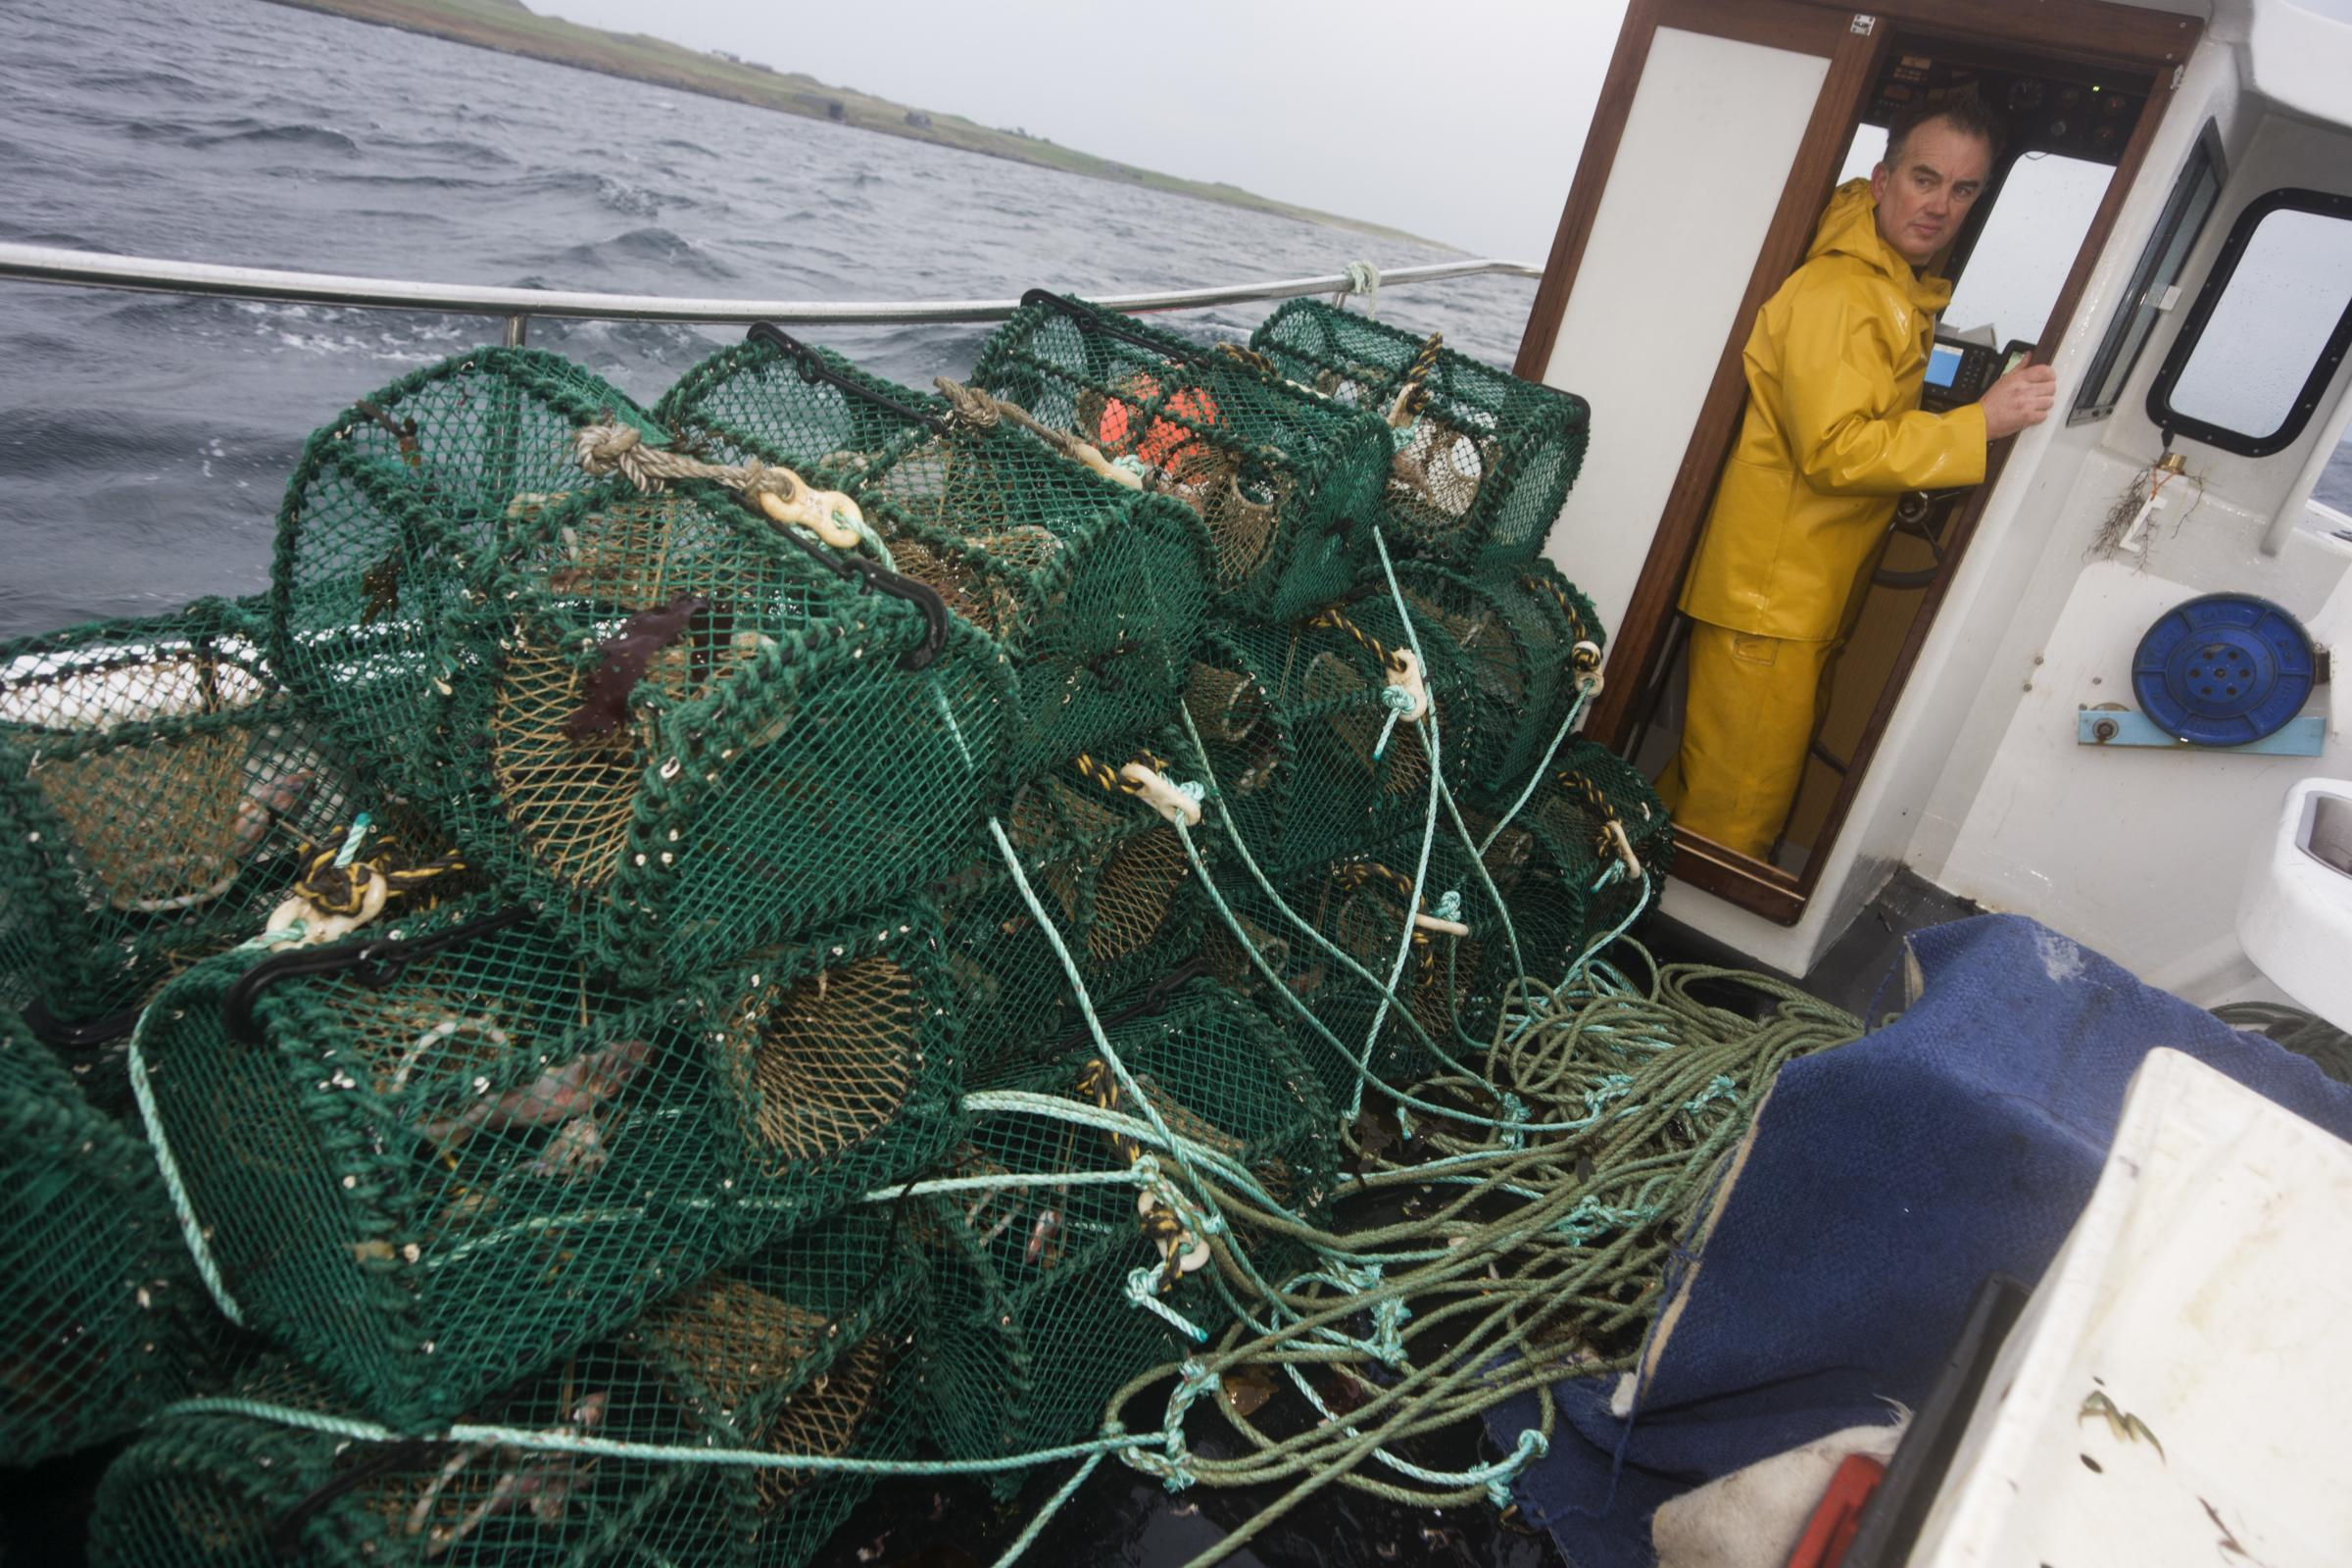 Trawling within the three-mile limit destroyed most of the fragile spawning areas of our most valuable fin fish